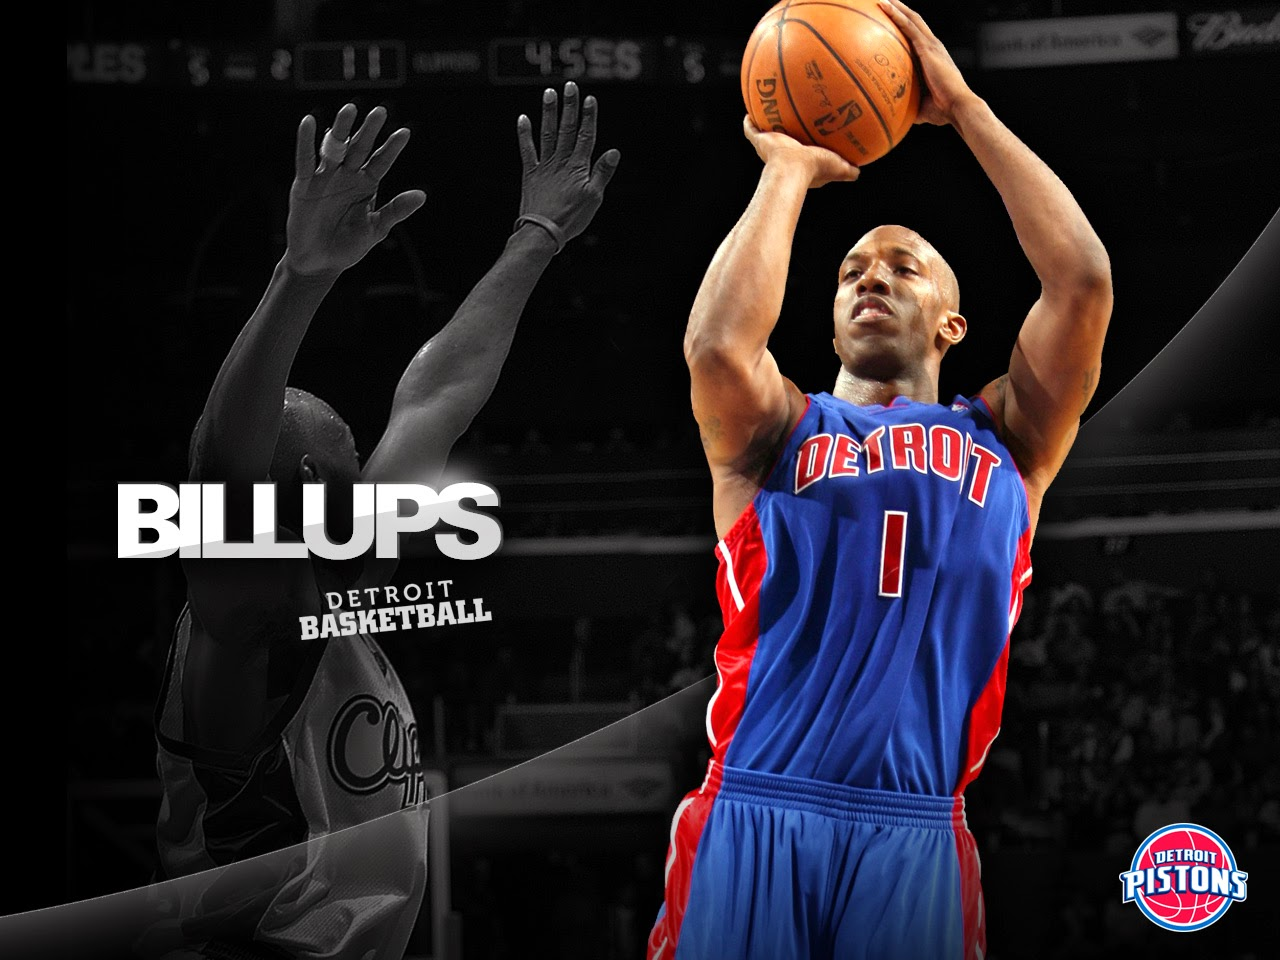 0337598216b Chauncey Billups announced his retirement from the NBA today. So let s look  back at all the big shots Mr. Big Shot took during his 17-year career in  the ...